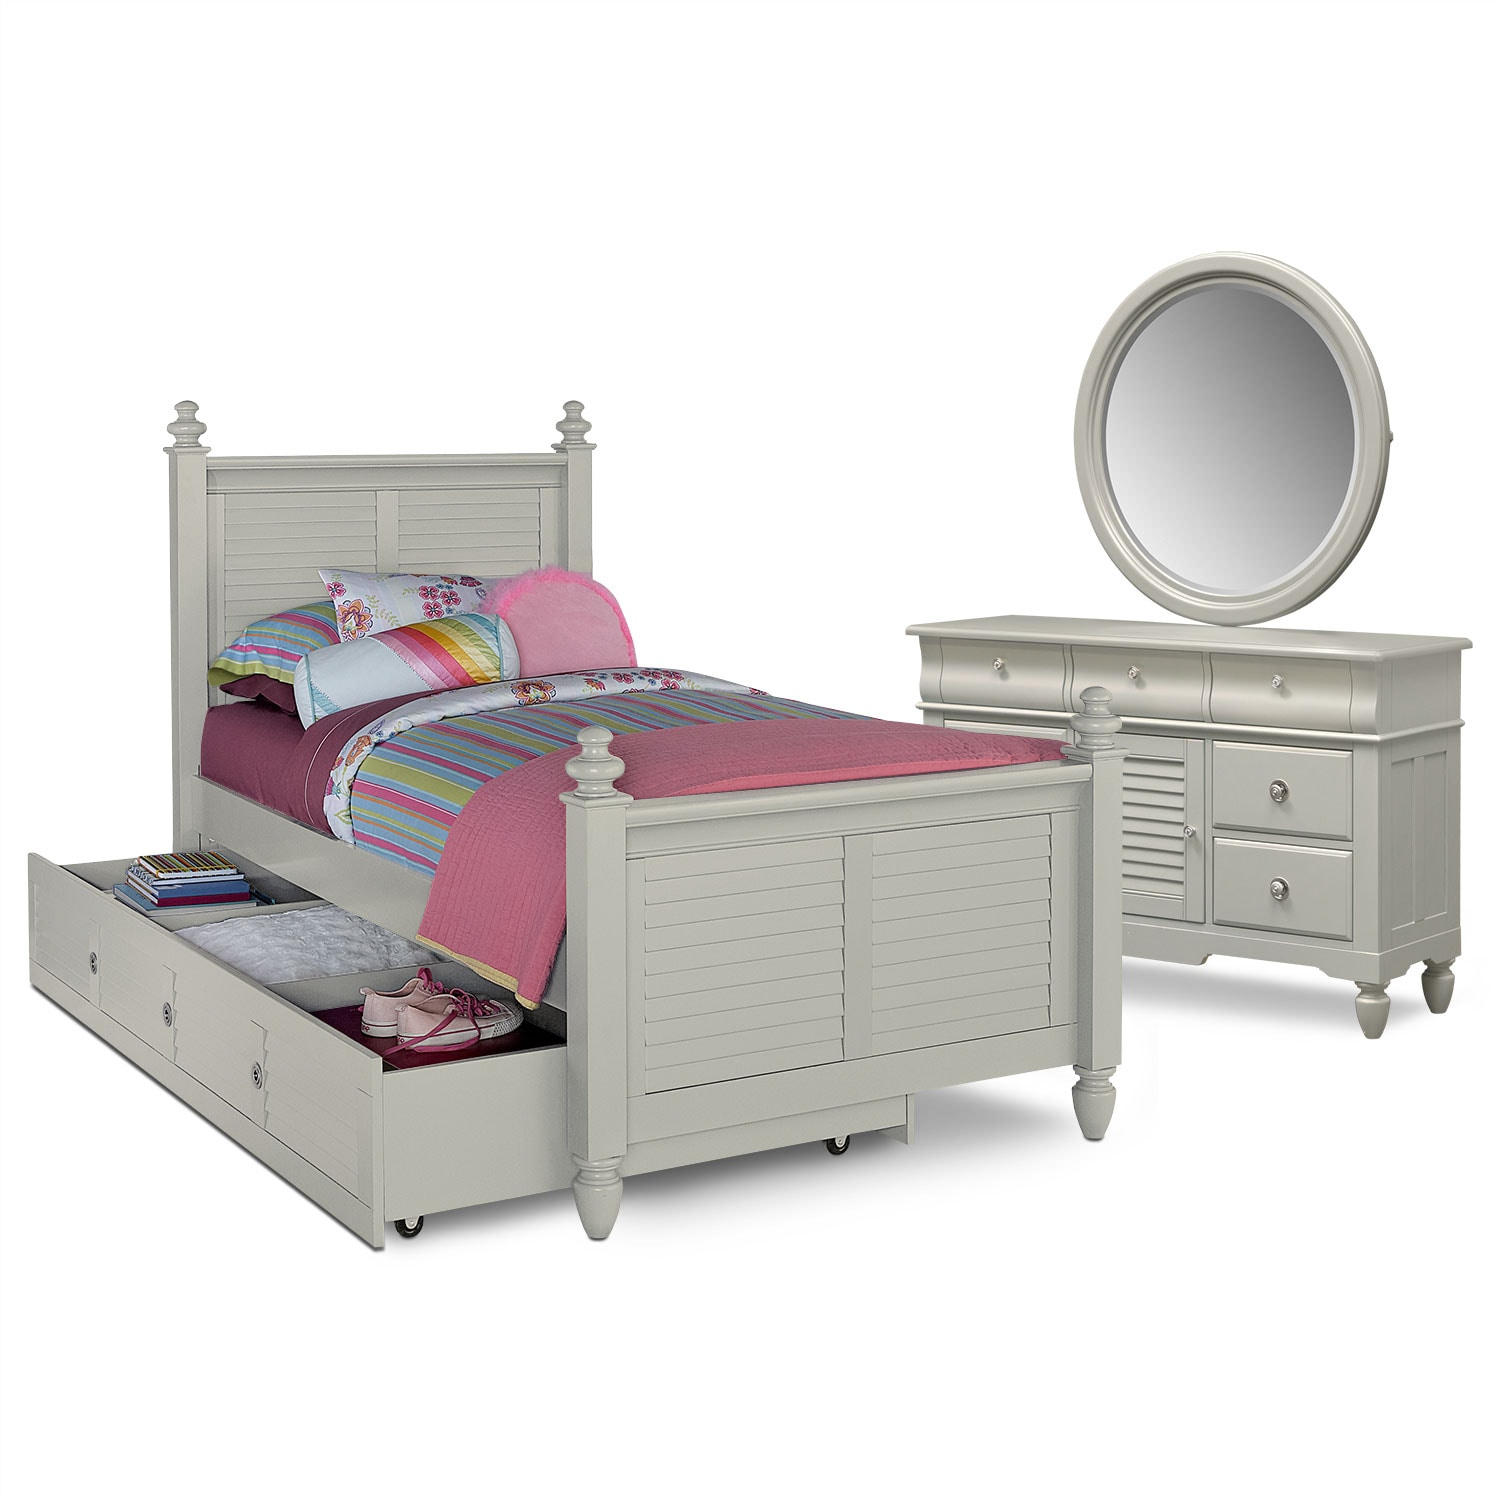 Kids Furniture - Seaside 6-Piece Twin Bedroom Set with Trundle - Gray